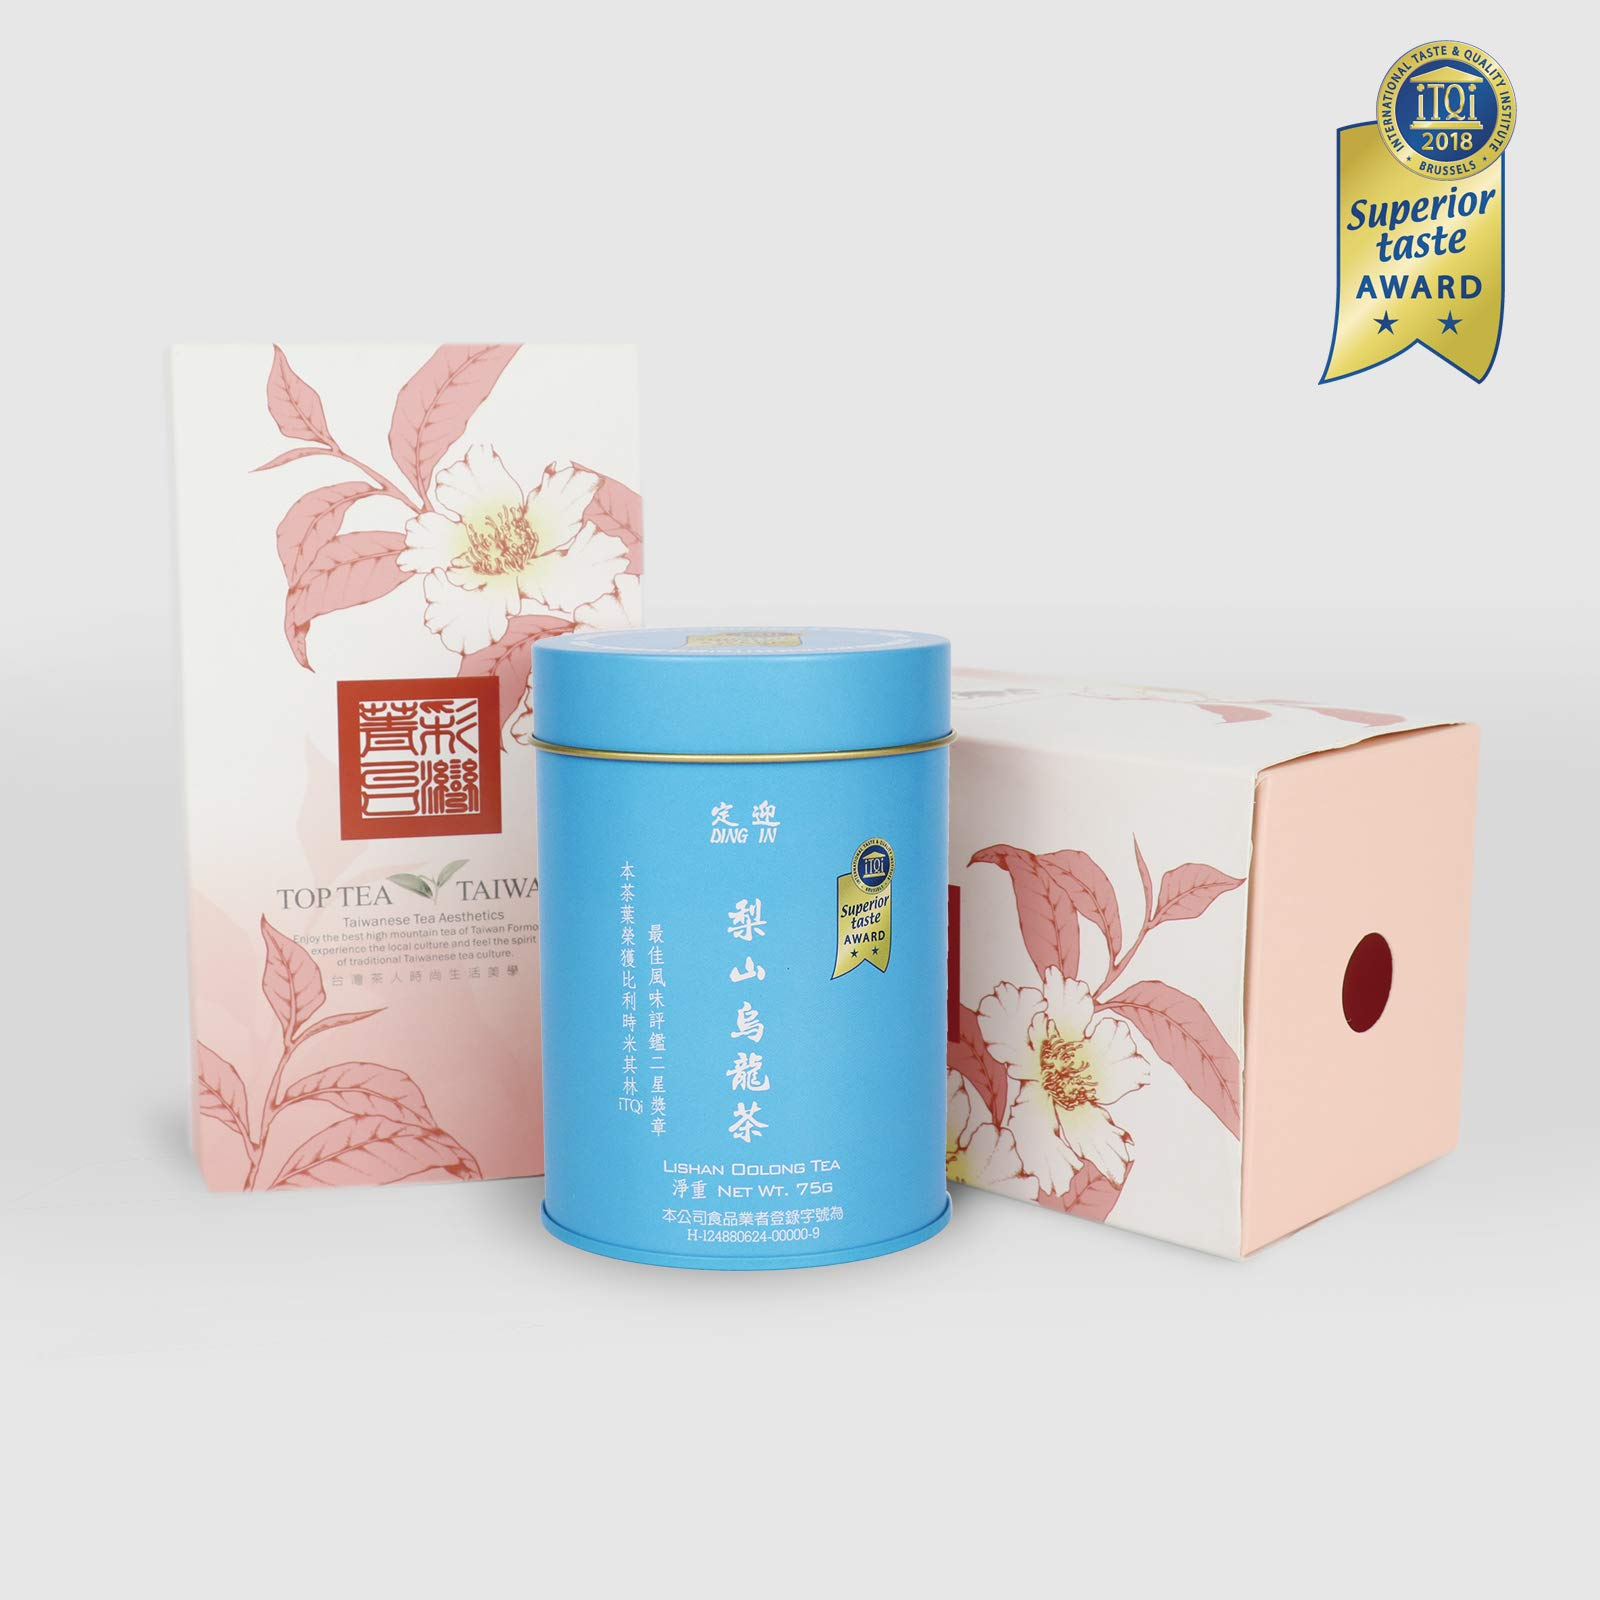 DING IN Lisan Oolong Tea Drawer Type Carton 75g/can by Ding In ltd. (Image #1)